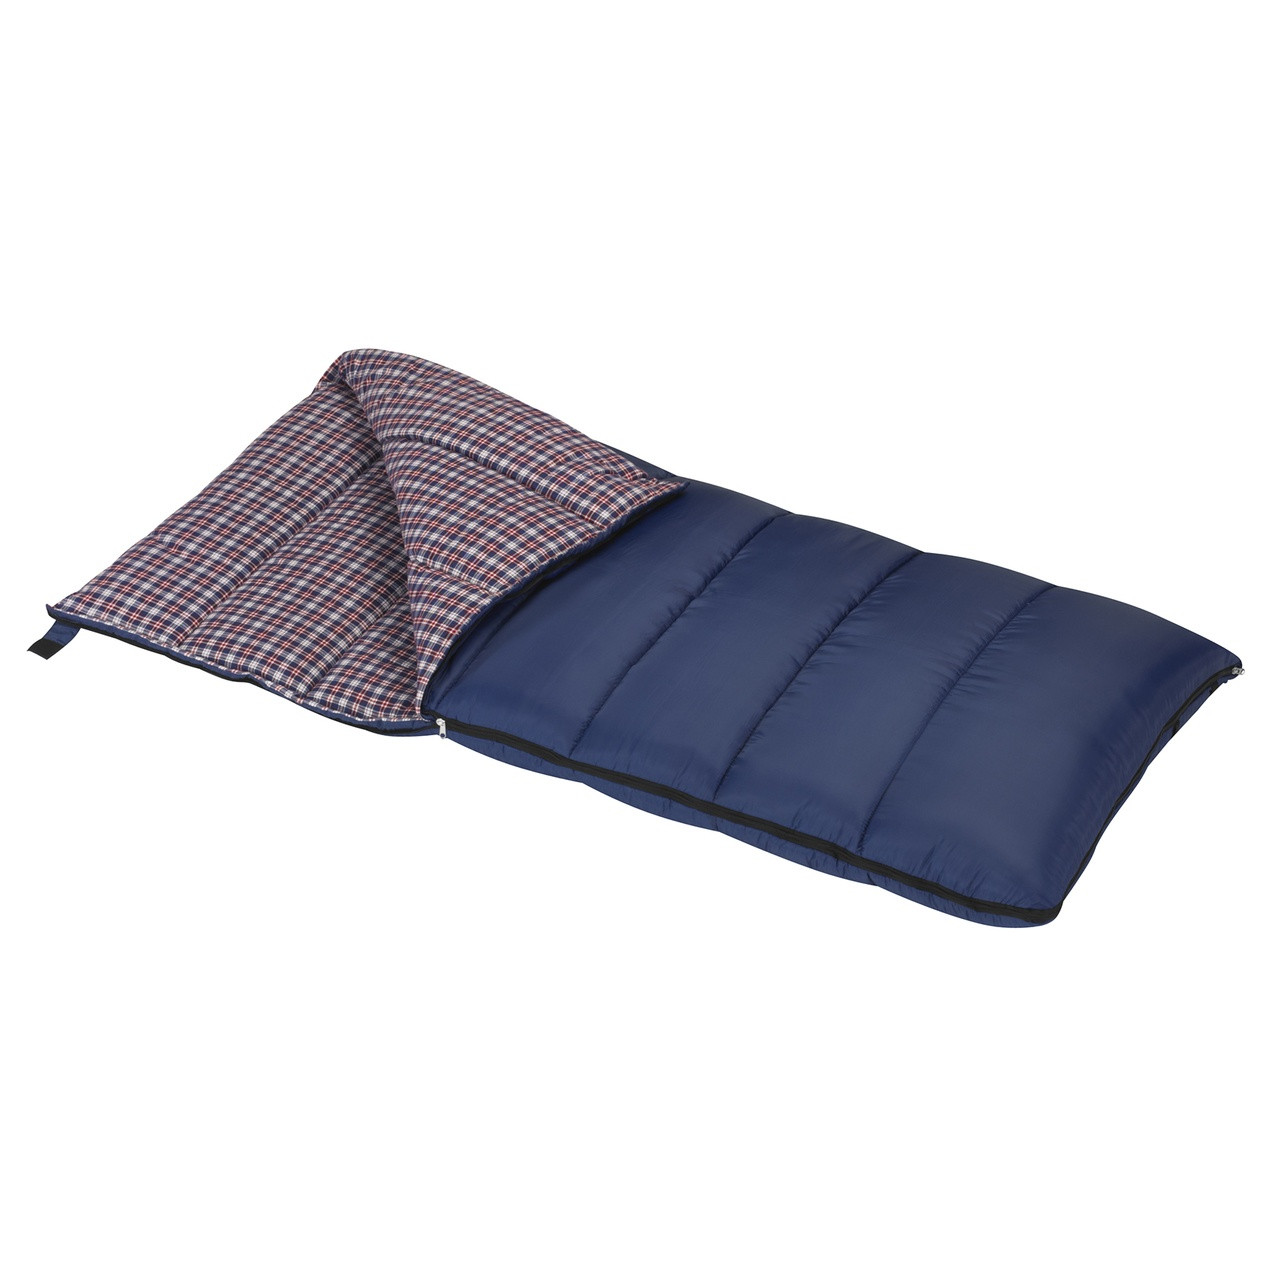 Wenzel Blue Jay 25 degree sleeping bag, blue, partially unzipped and folded over showing the blue and white plaid interior